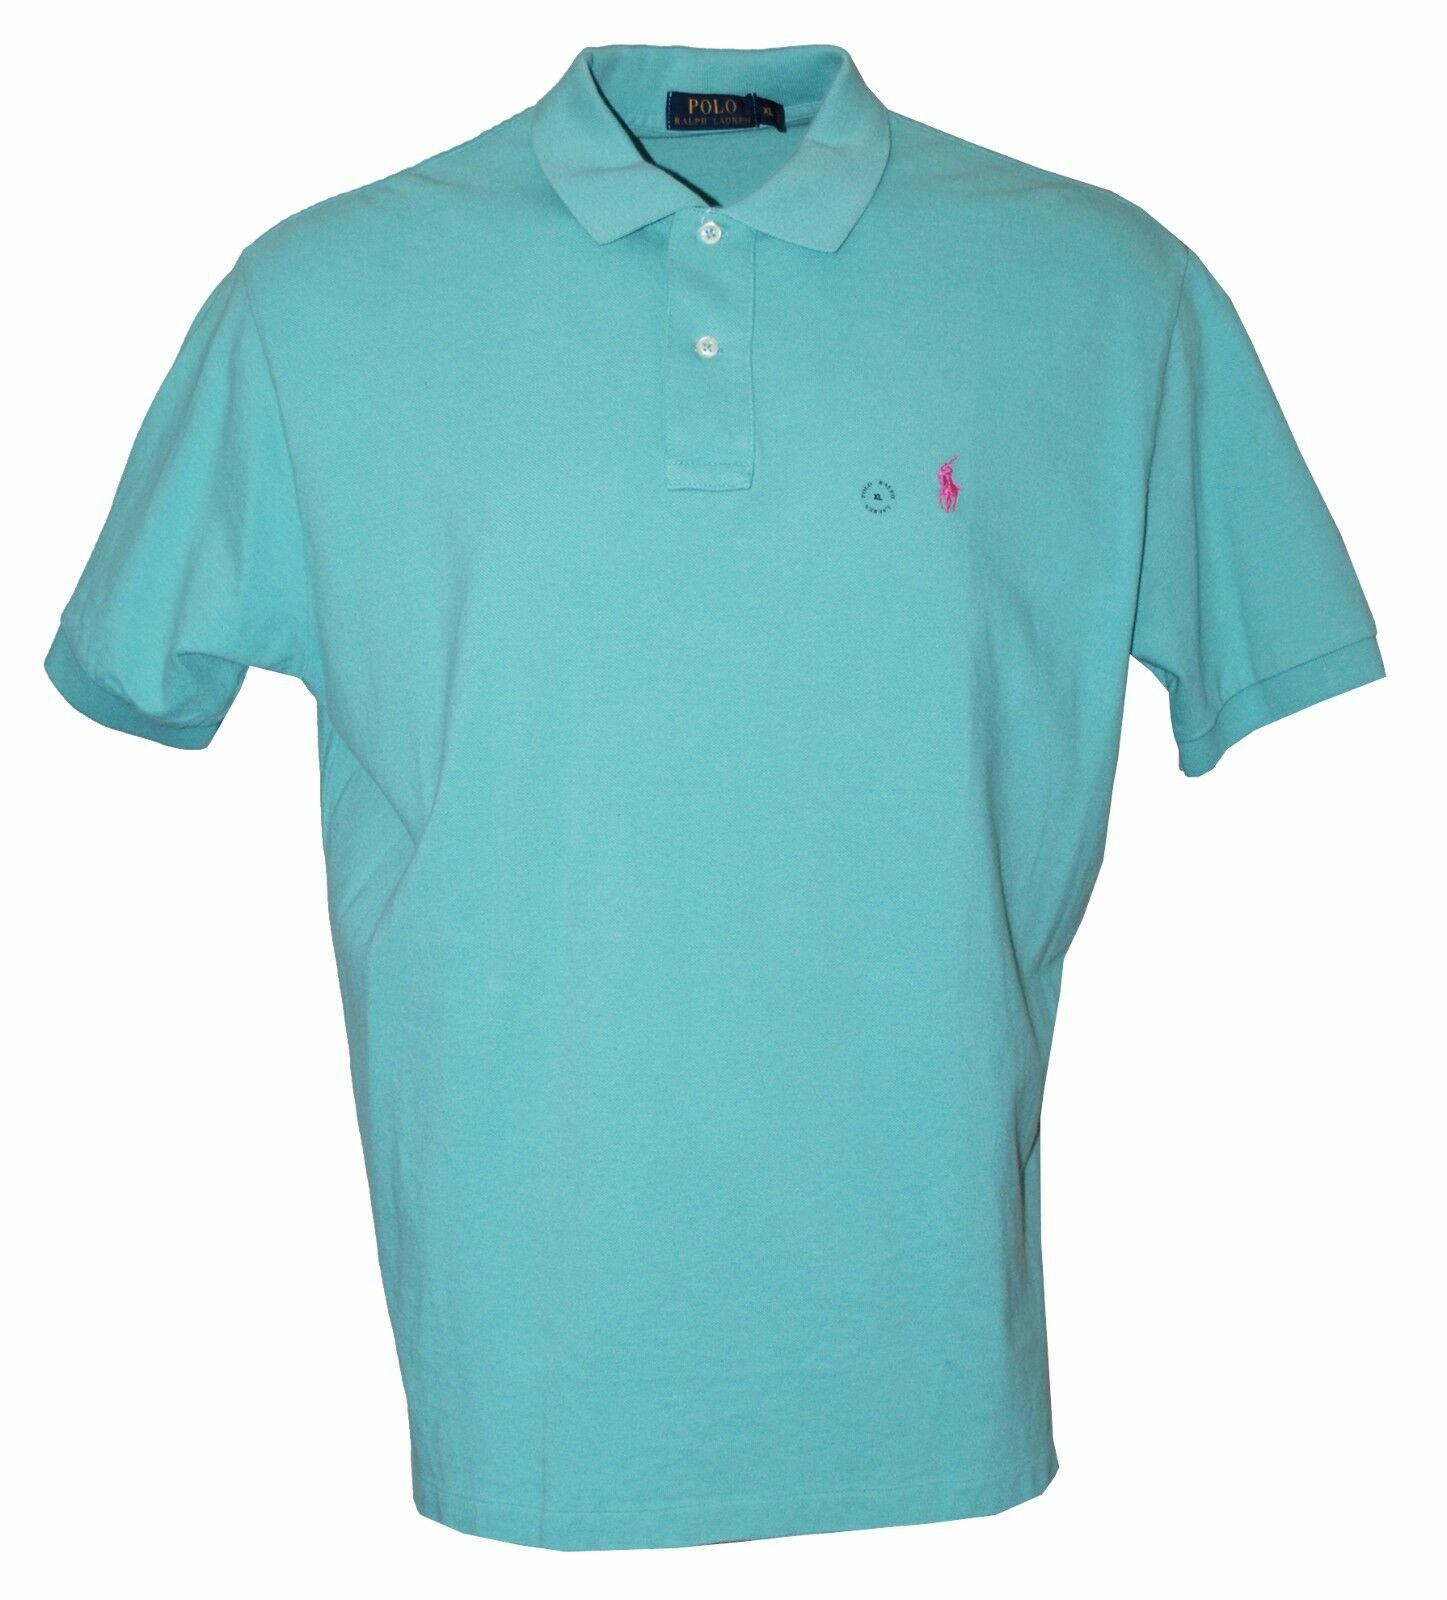 Polo Ralph Lauren Men's Classic Fit Mesh Polo Shirt ( Salisbury, XL)